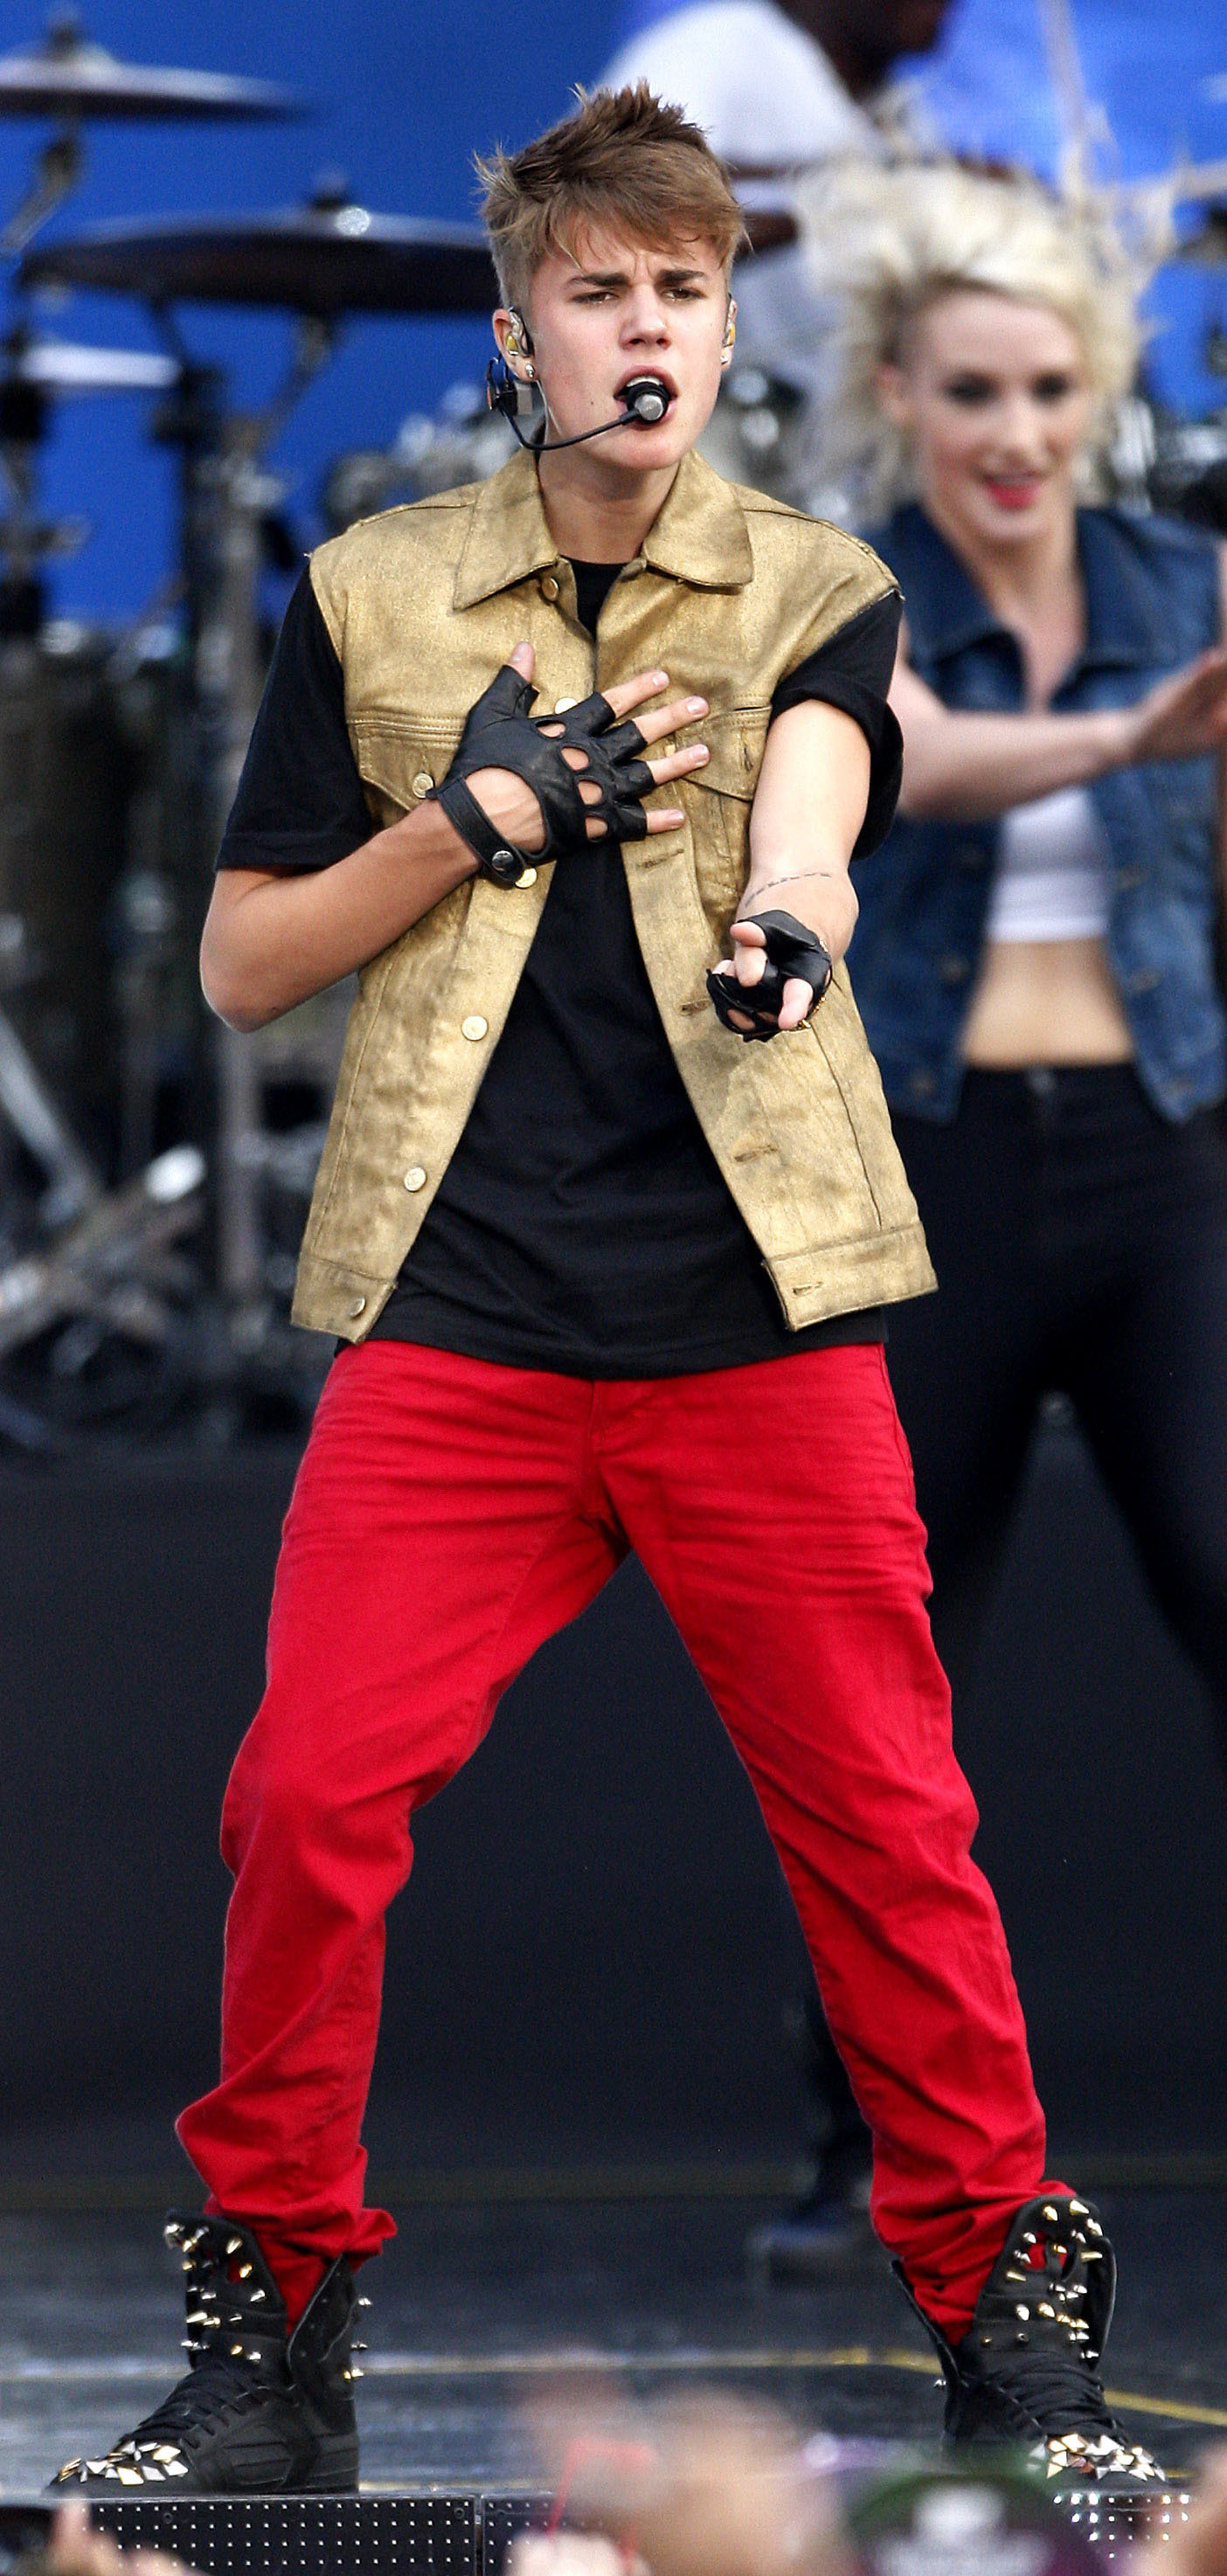 Justin Bieber One Direction style